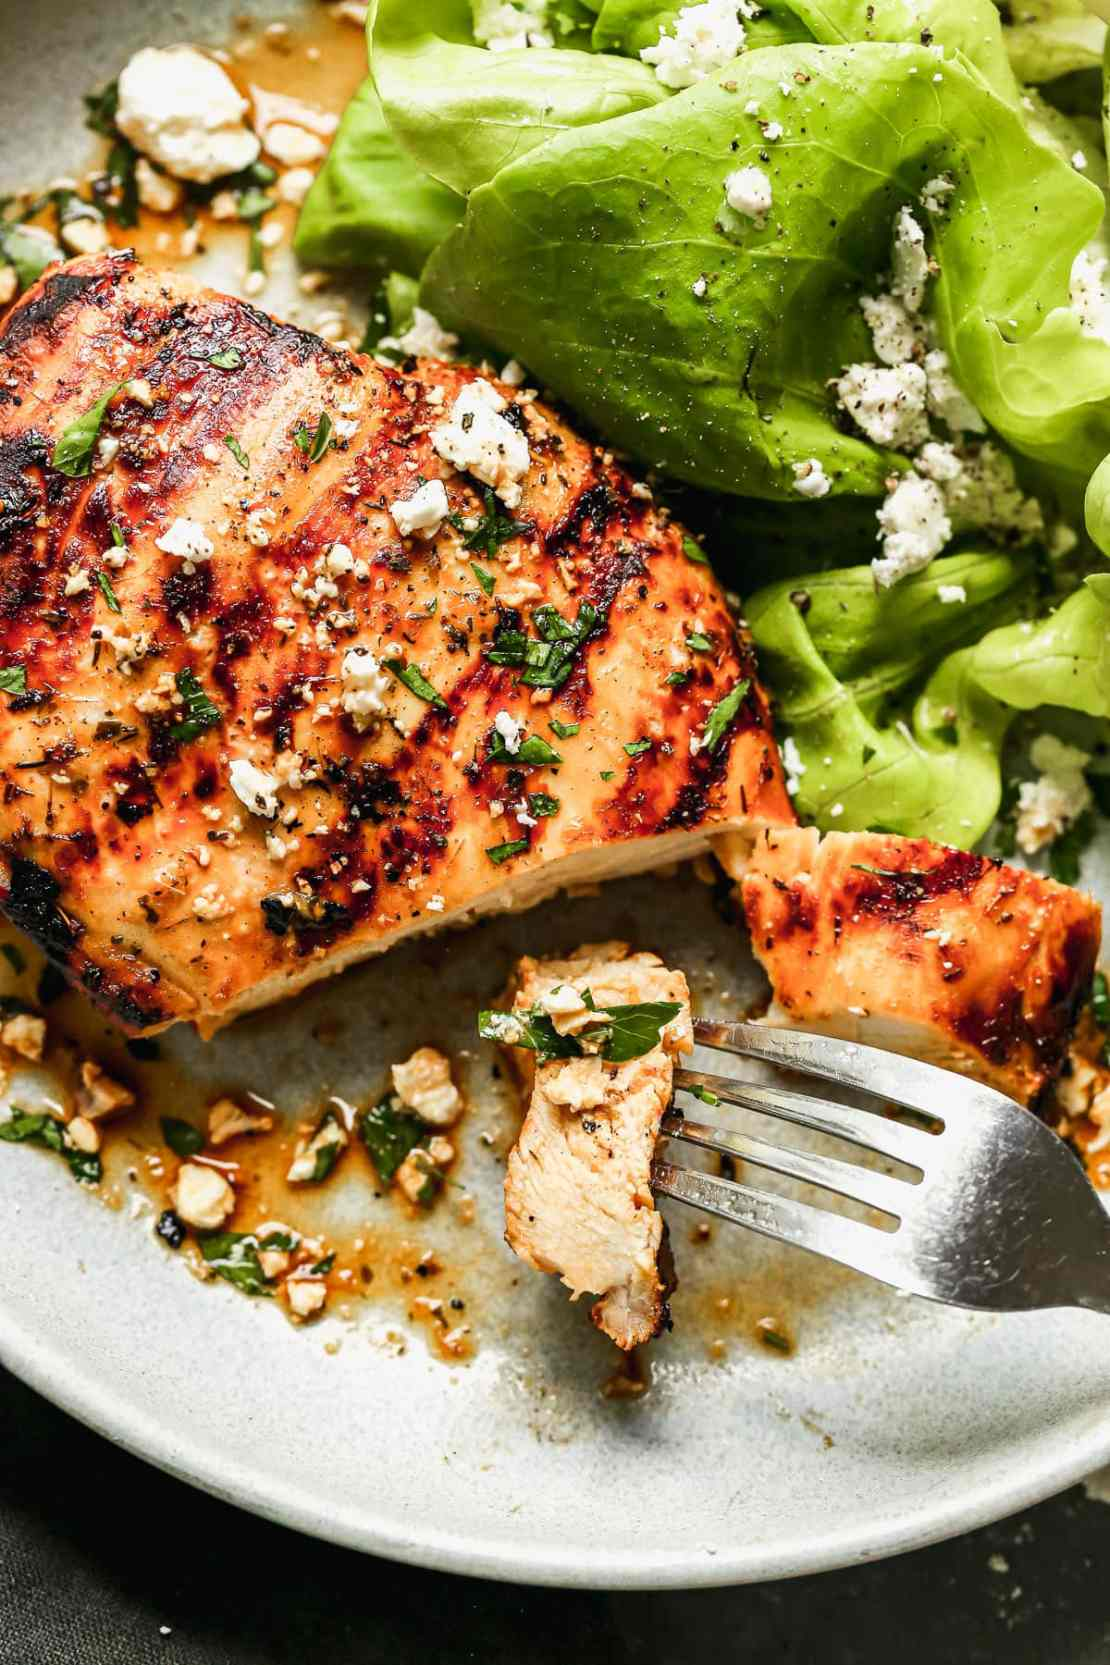 Grilled chicken breast on a plate